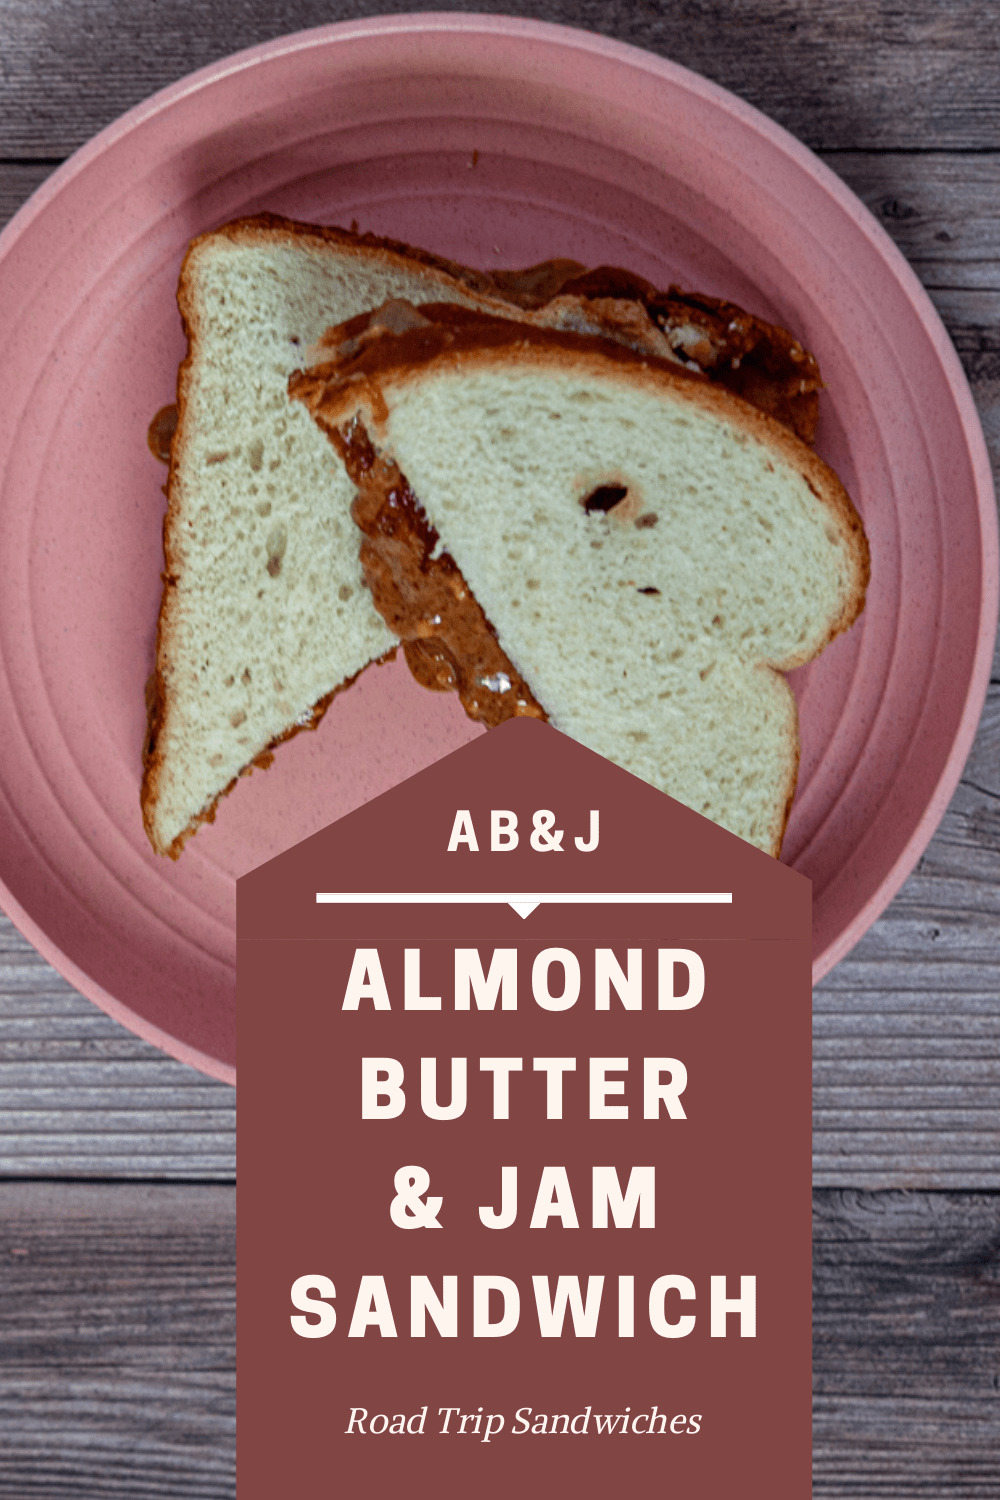 A classic PB&J road trip sandwich made special with the use of almond butter. Of course, a classic peanut butter and jelly sandwich works too! This is definitely a crowd pleaser that will appease everyone in your car for a quick and easy lunch. Plus, if you're looking for vegetarian sandwiches that travel well, you can't go wrong with AB&J or PB&J! #RoadTripMealsToPack #RoadTripMealsForFamilies #MakeAheadRoadTripMeals #CheapRoadTripMeals #RoadTripLunches #EasyRoadTripMeals #RoadTripMealsForKids